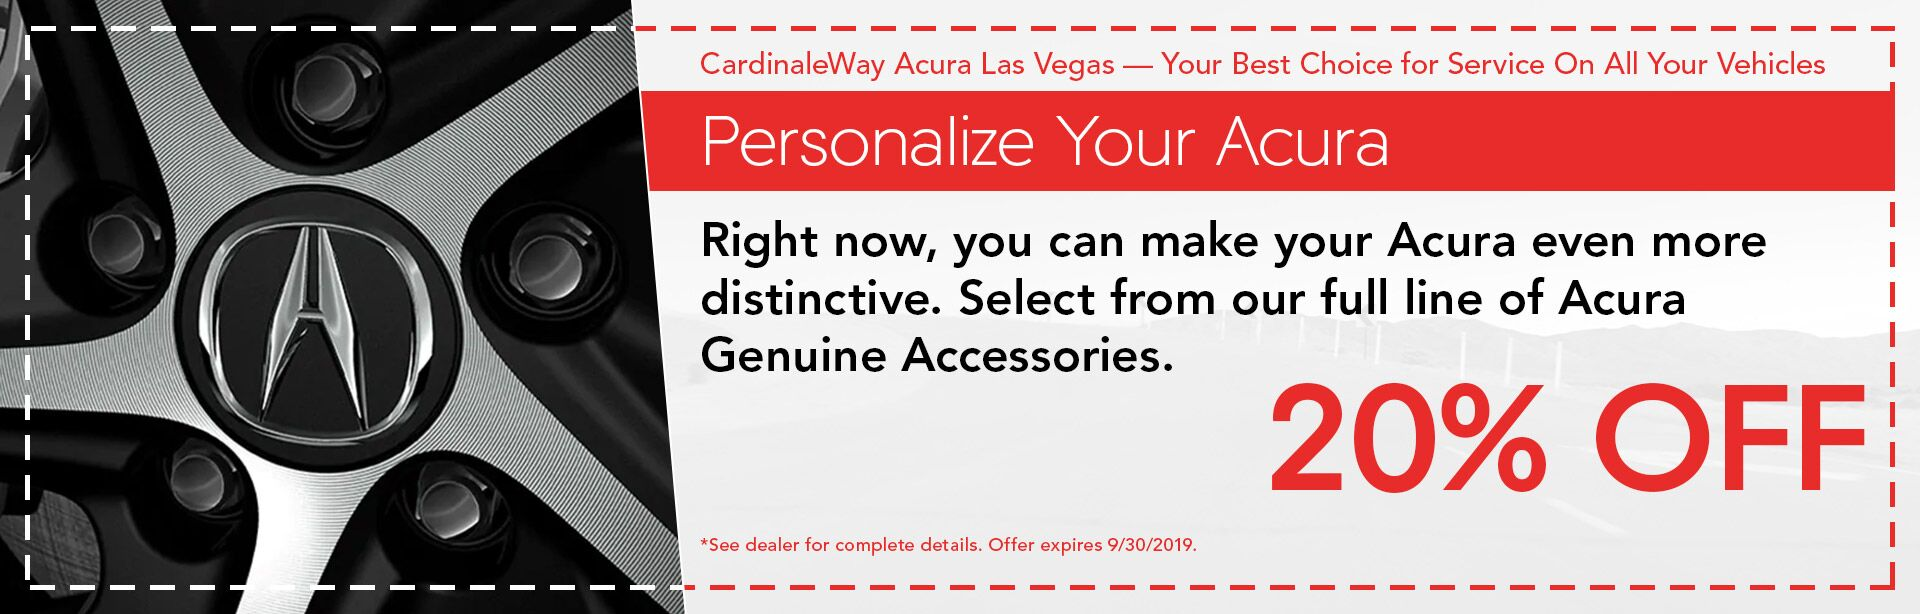 Personalize Your Acura